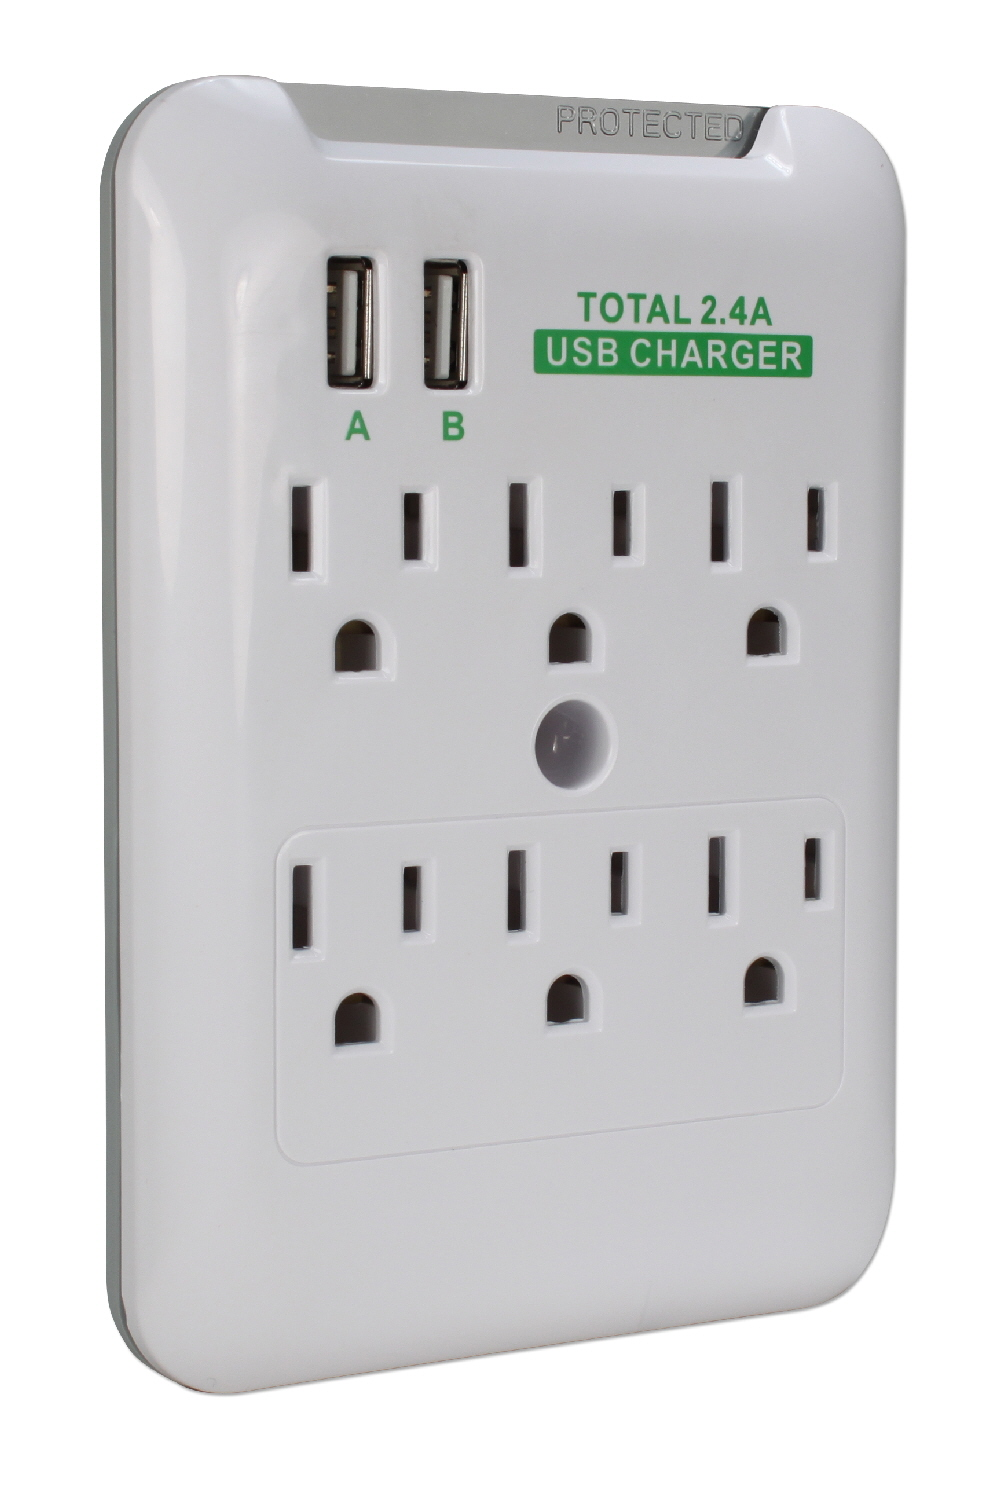 6-Outlet Wallmount Surge Protector with Dual-USB 2.4Amp Charging Ports - PP-68PL-AC6200-CMT